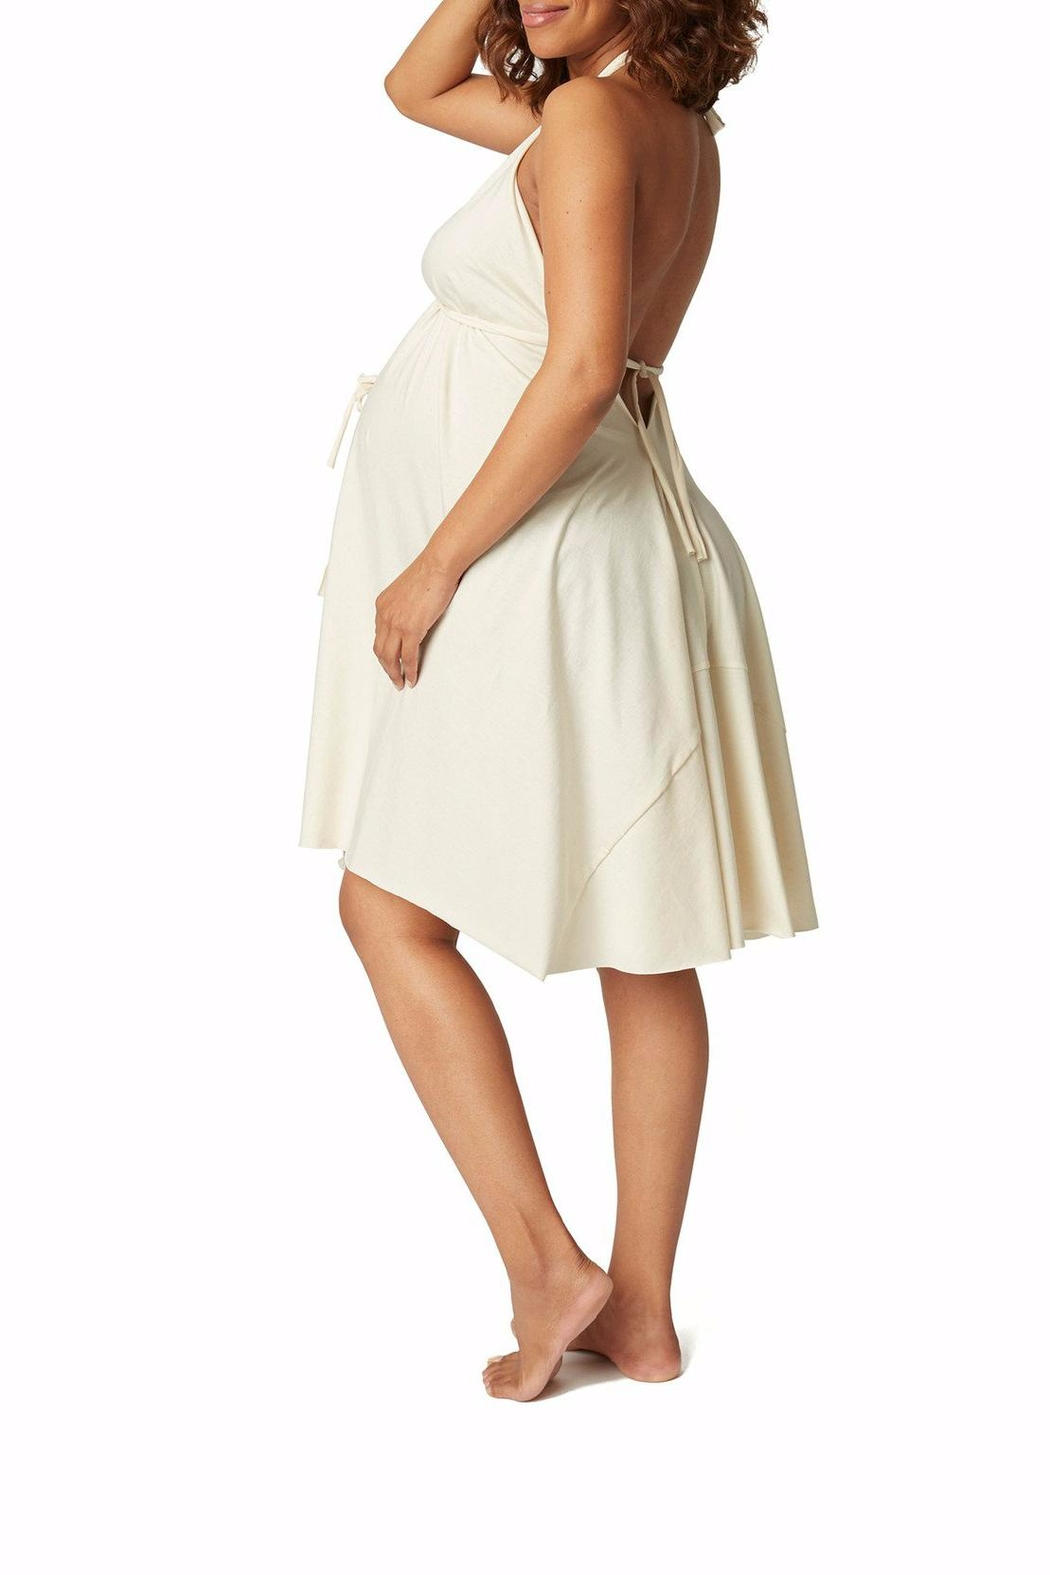 Pretty Pushers Unbleached Labor Gown - Front Cropped Image